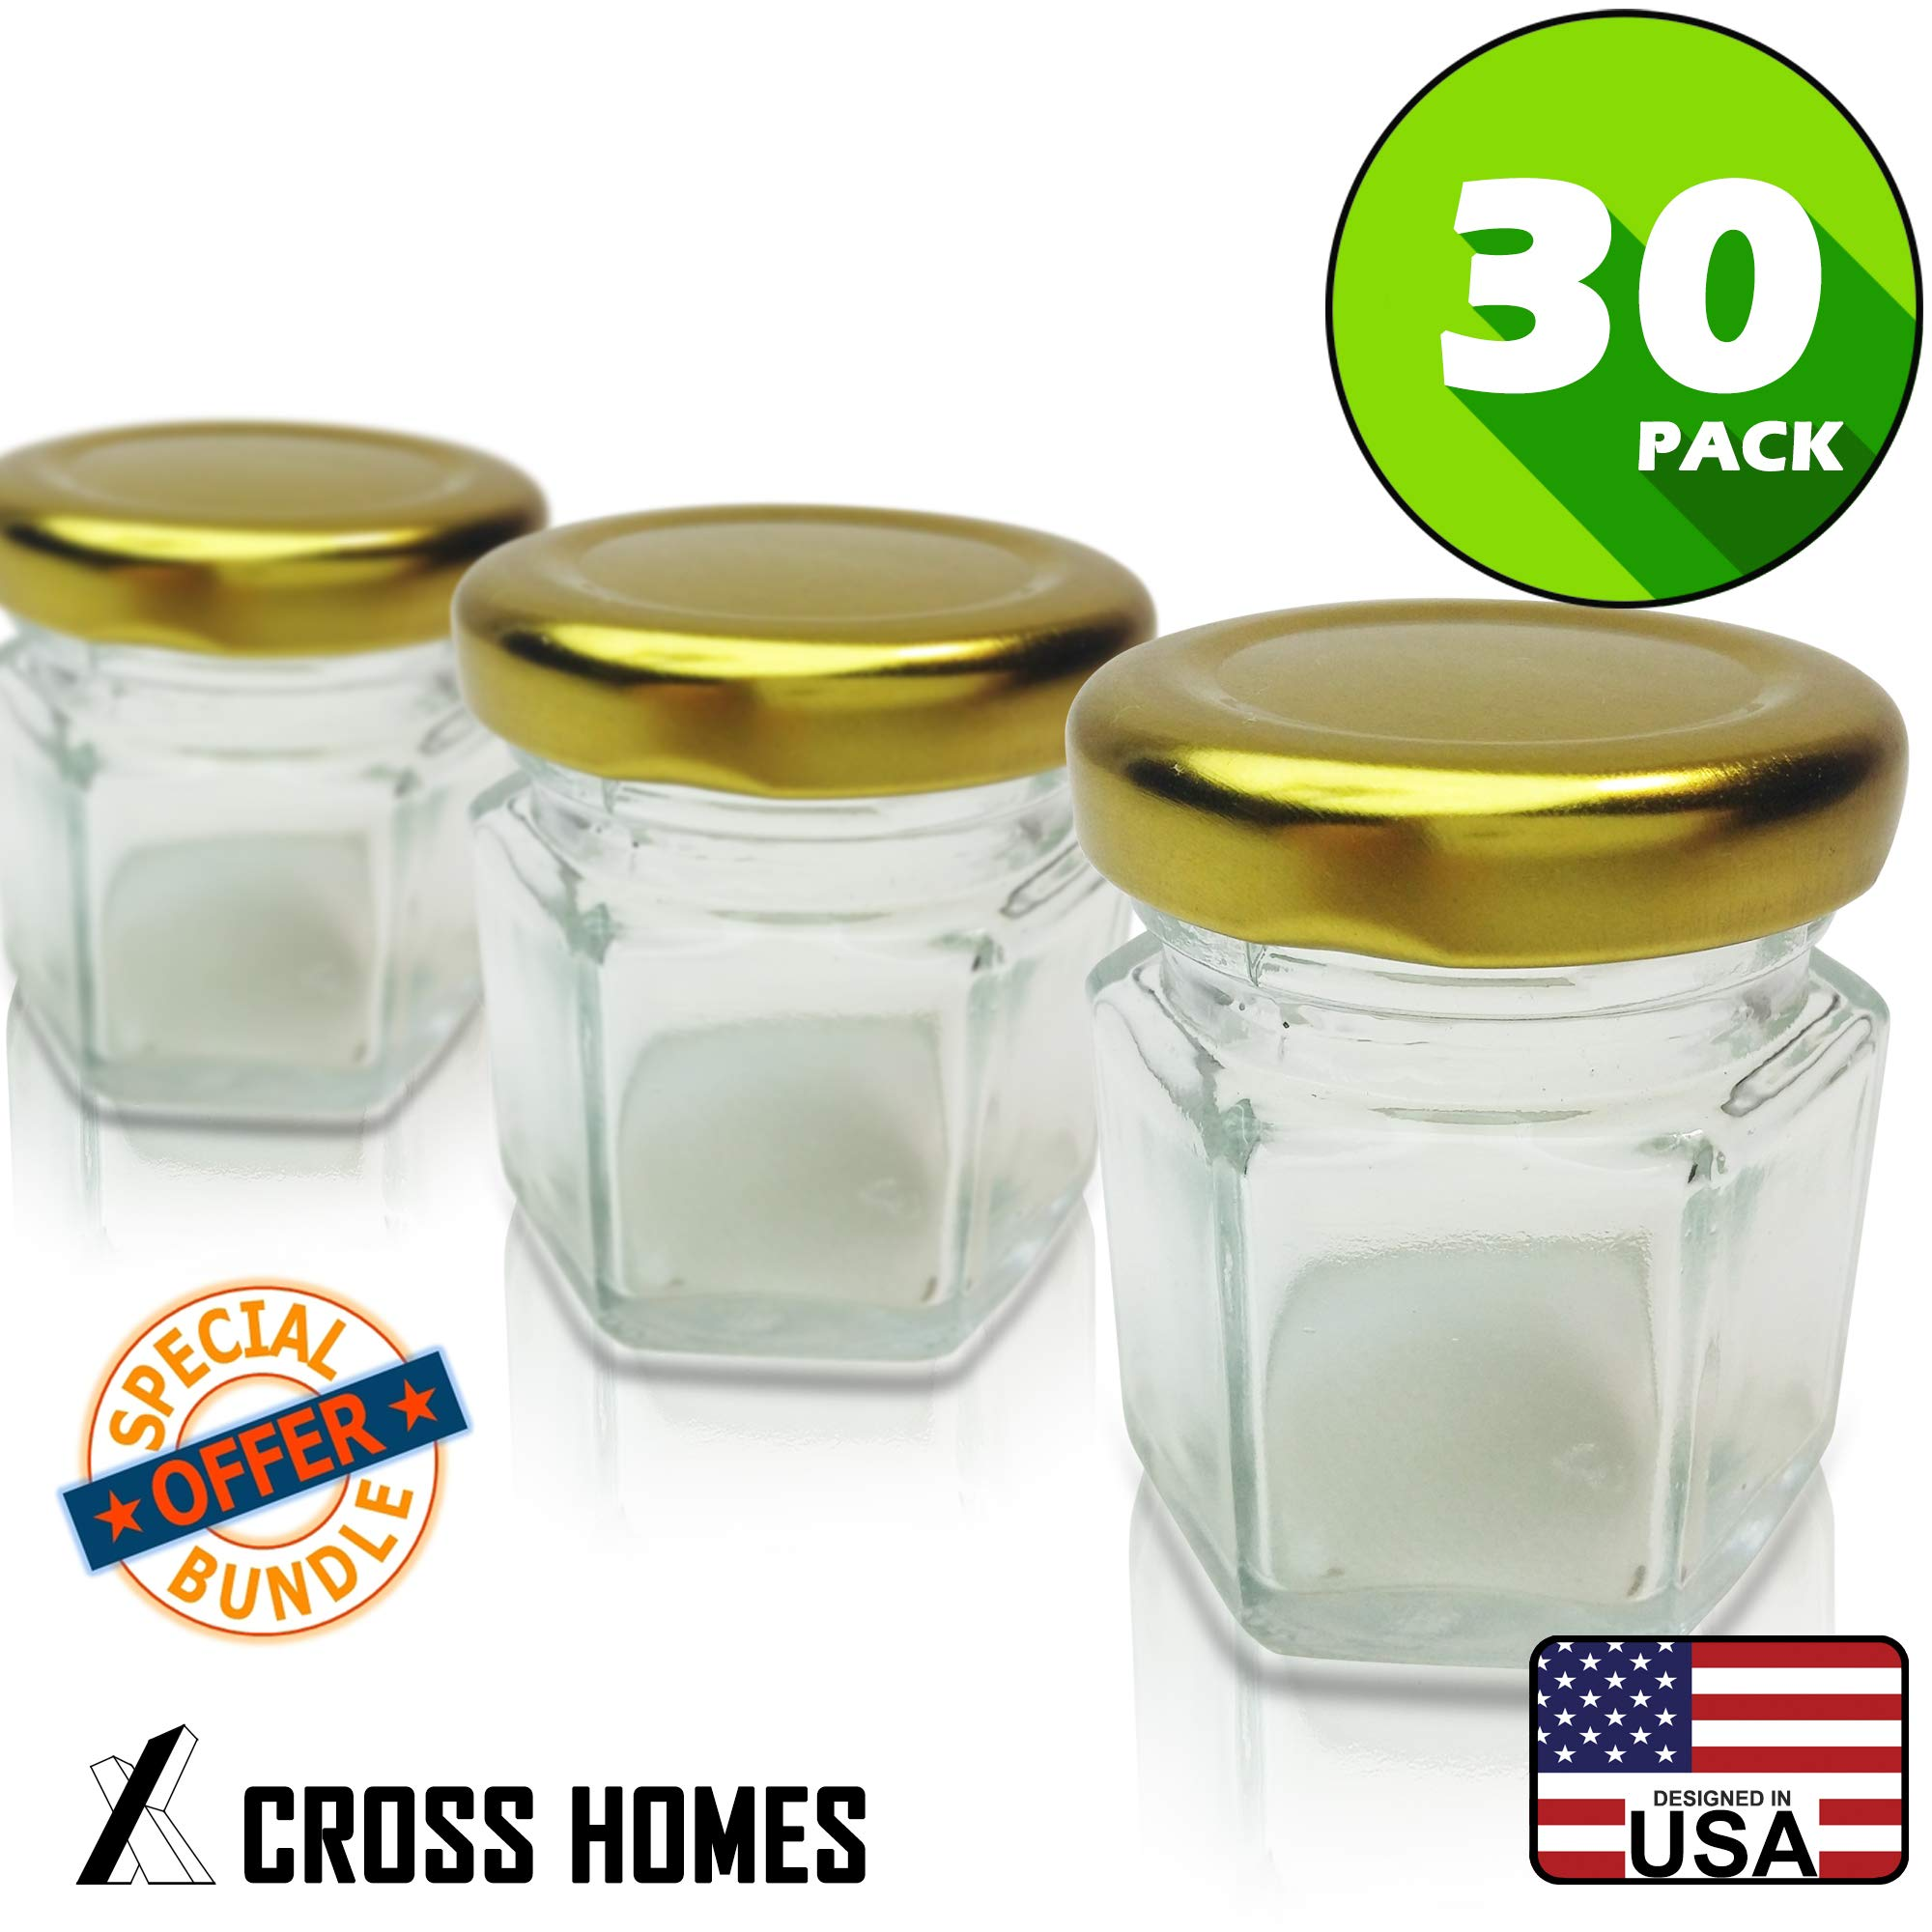 Hexagon Jars Gold Lid (30pcs 1.5 oz) Hexagon Glass Jars with 30pcs Gold Plastisol Lined Lids for Jam Honey Jelly Wedding Favors Baby Shower Favors Baby Food DIY Magnetic Spice Jars Crafts Canning Jars by CROSS.